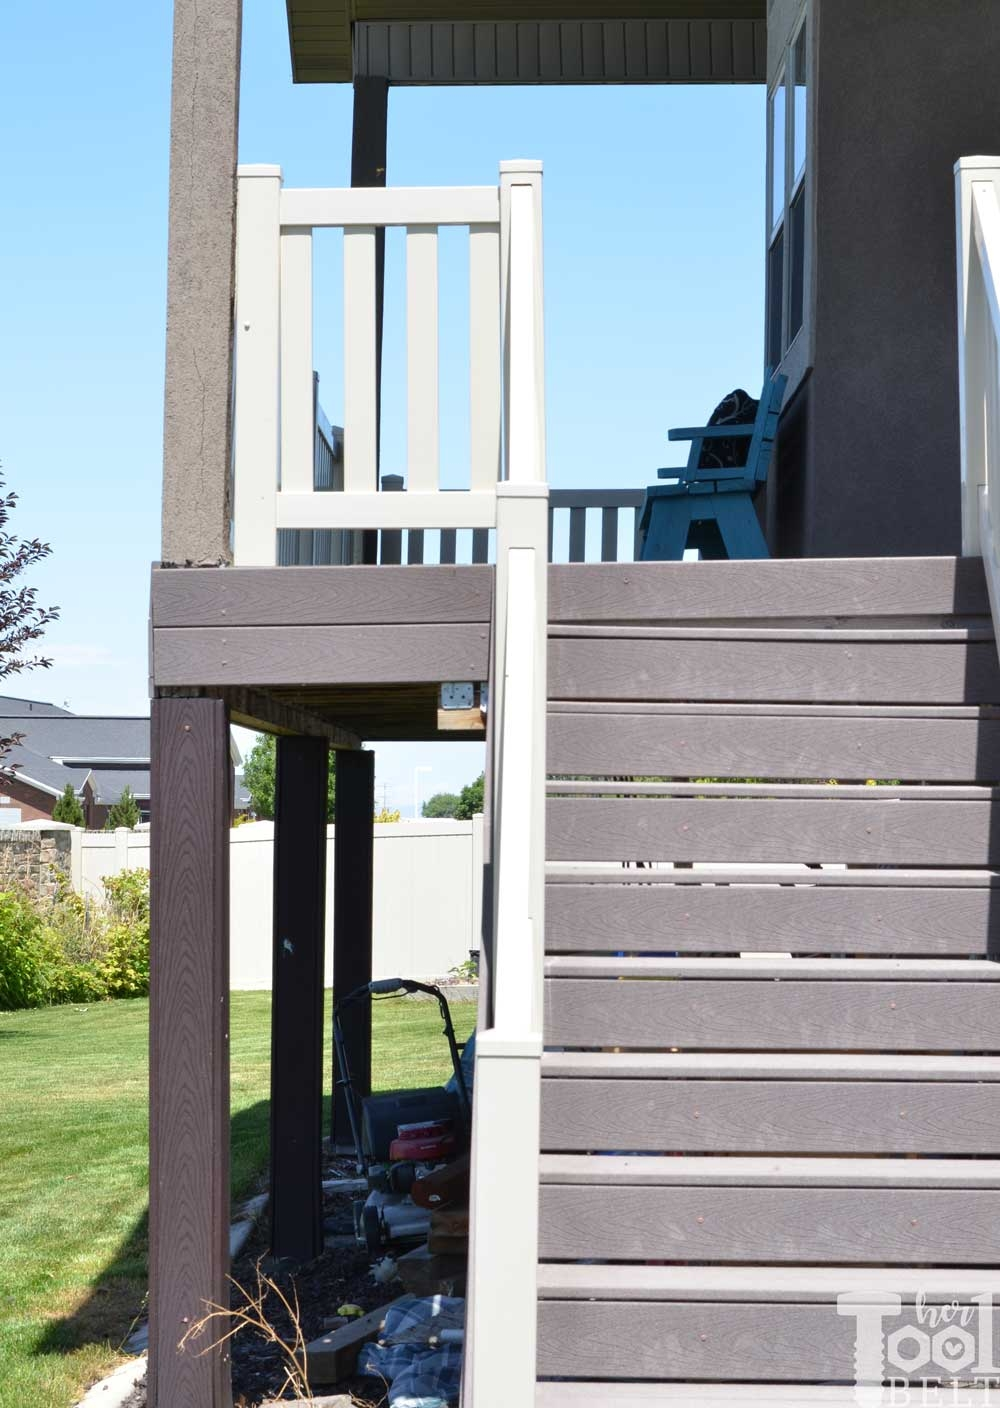 Fix The Sagging Deck Her Tool Belt | Repairing Outdoor Wooden Steps | Staircase | Patio | Concrete Slab | Front Porch | Stringer